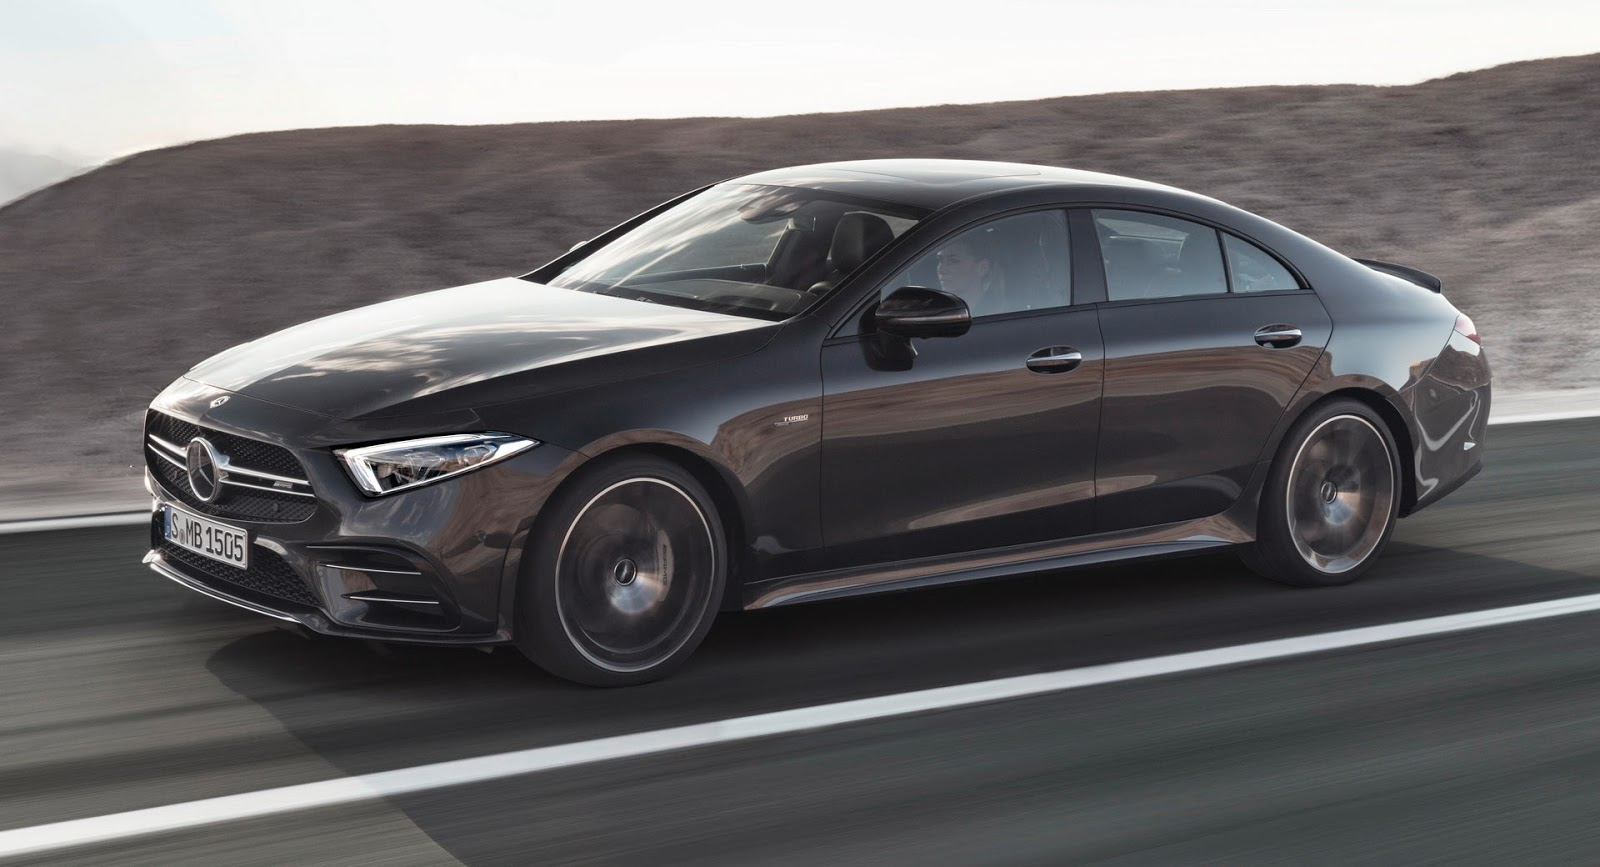 mercedes-amg-cls-53-officially-revealed_1.jpg